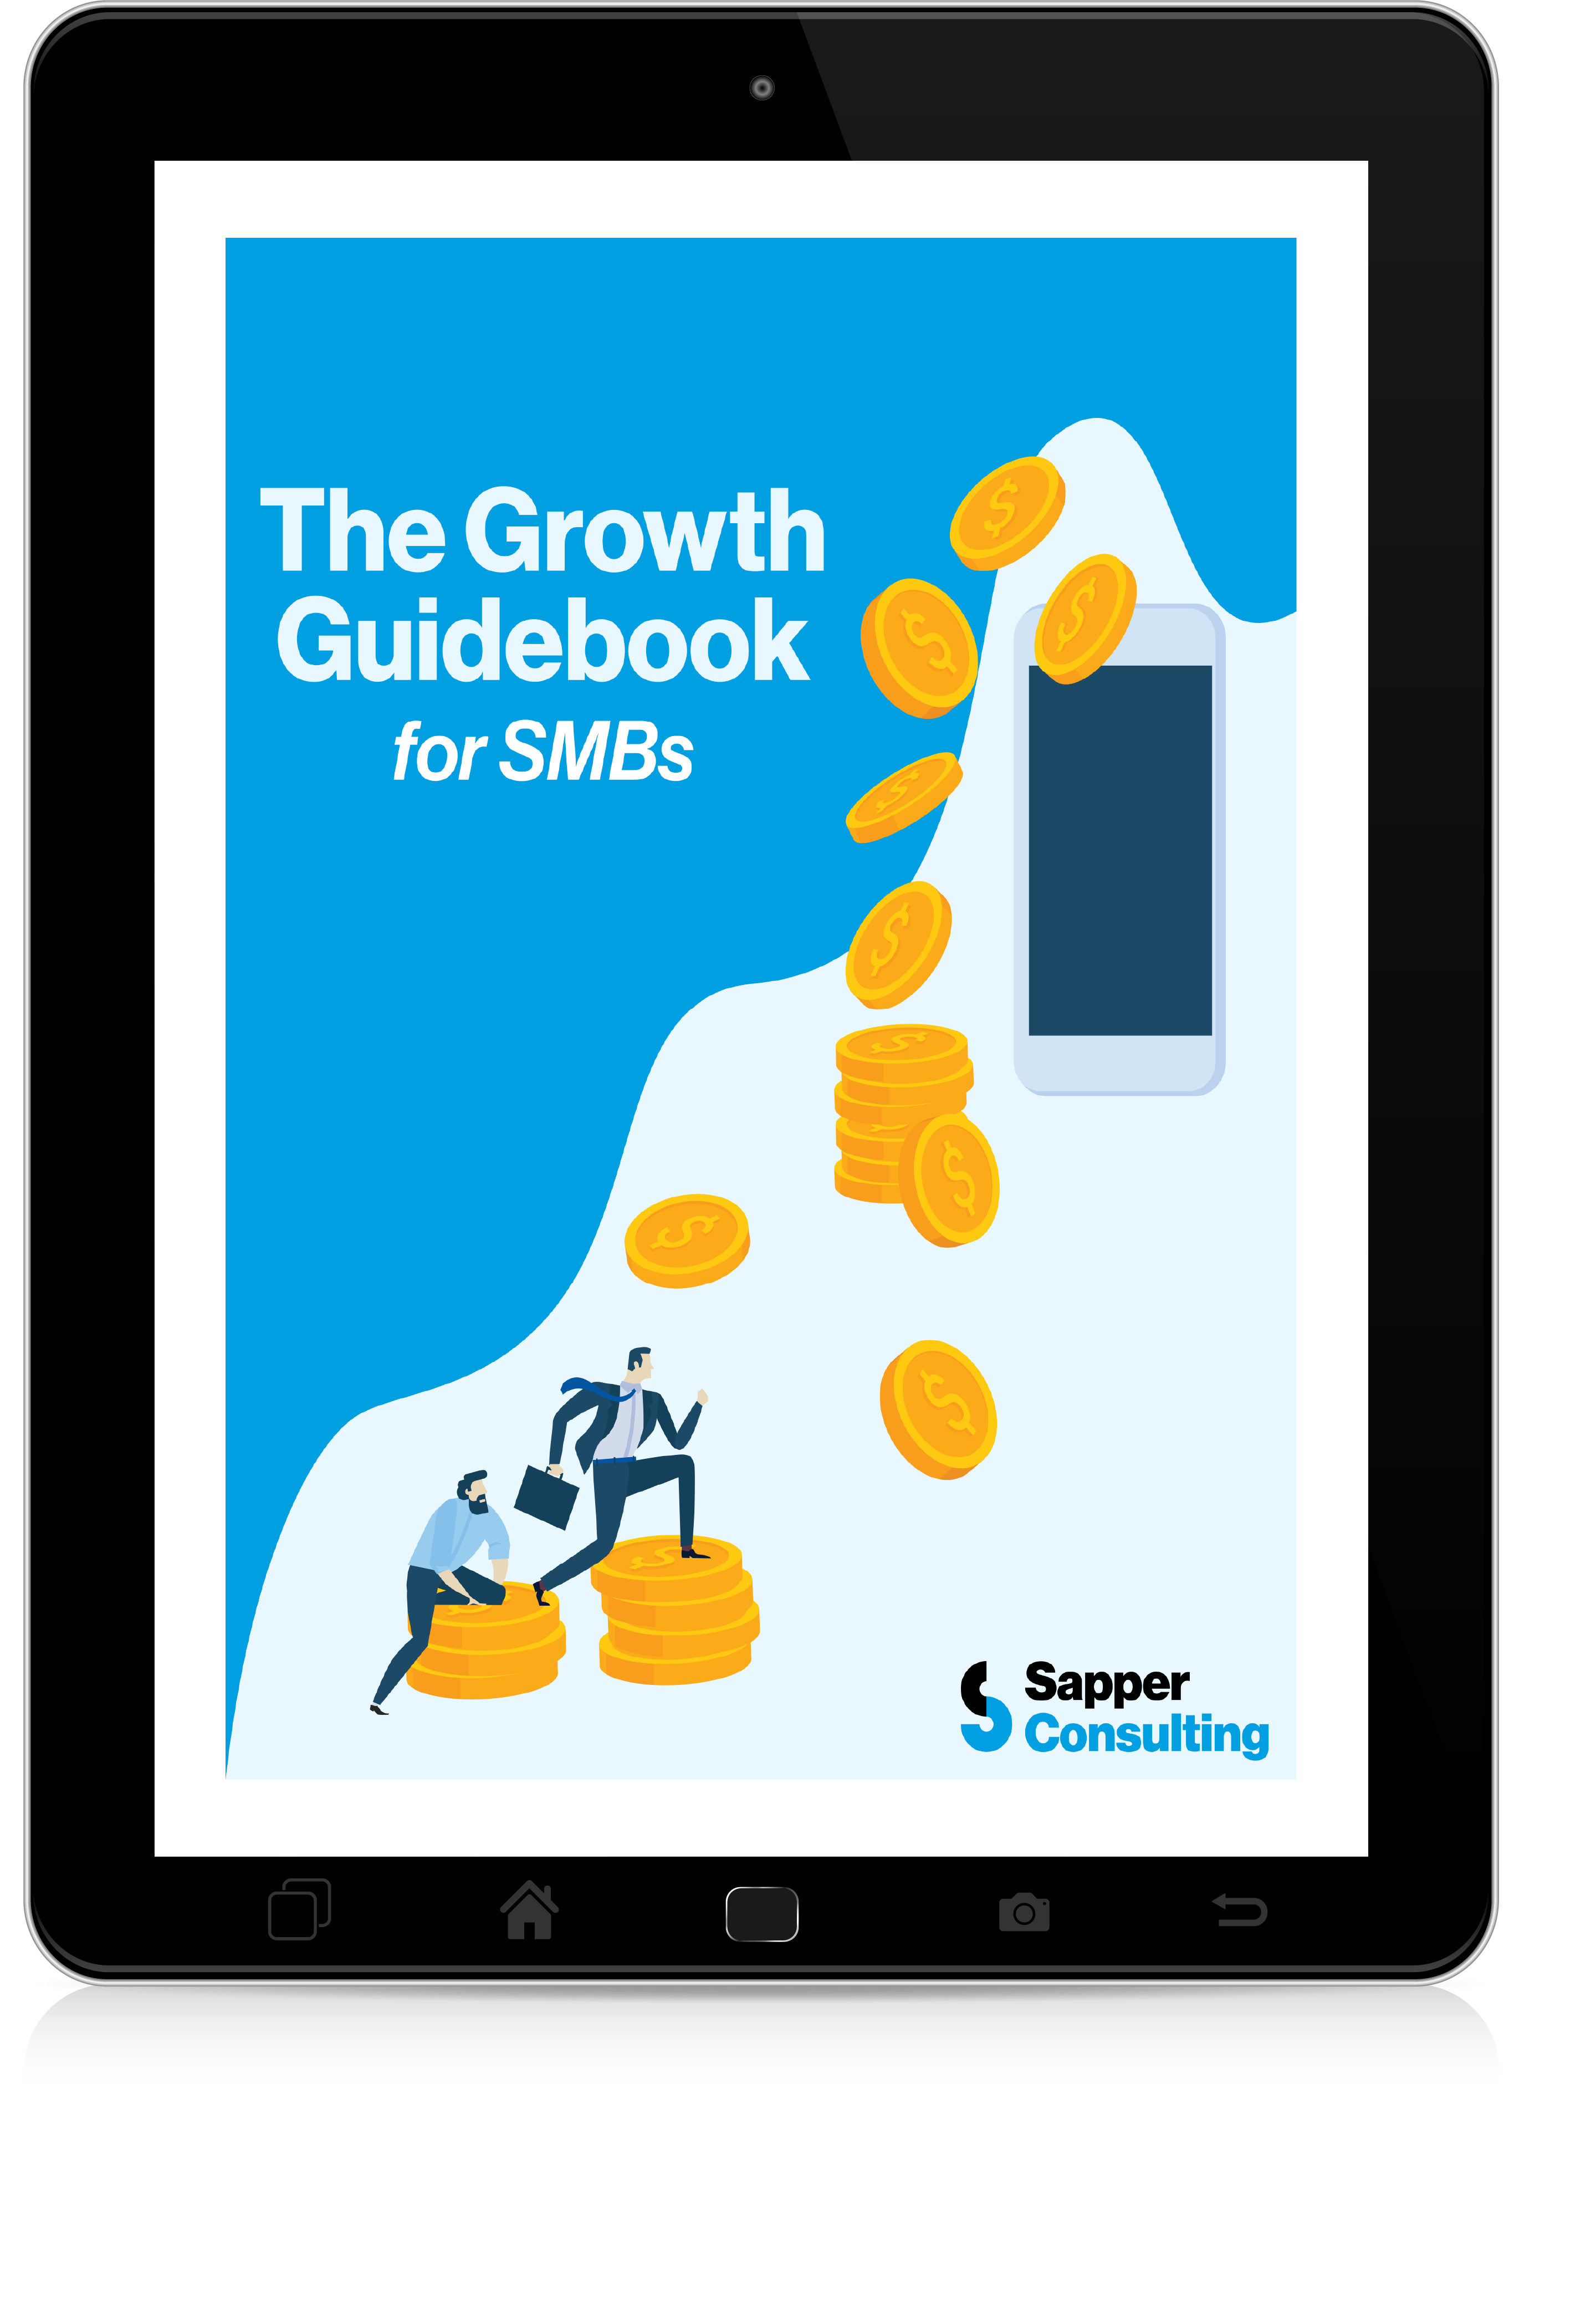 The Growth Guidebook for SMBs